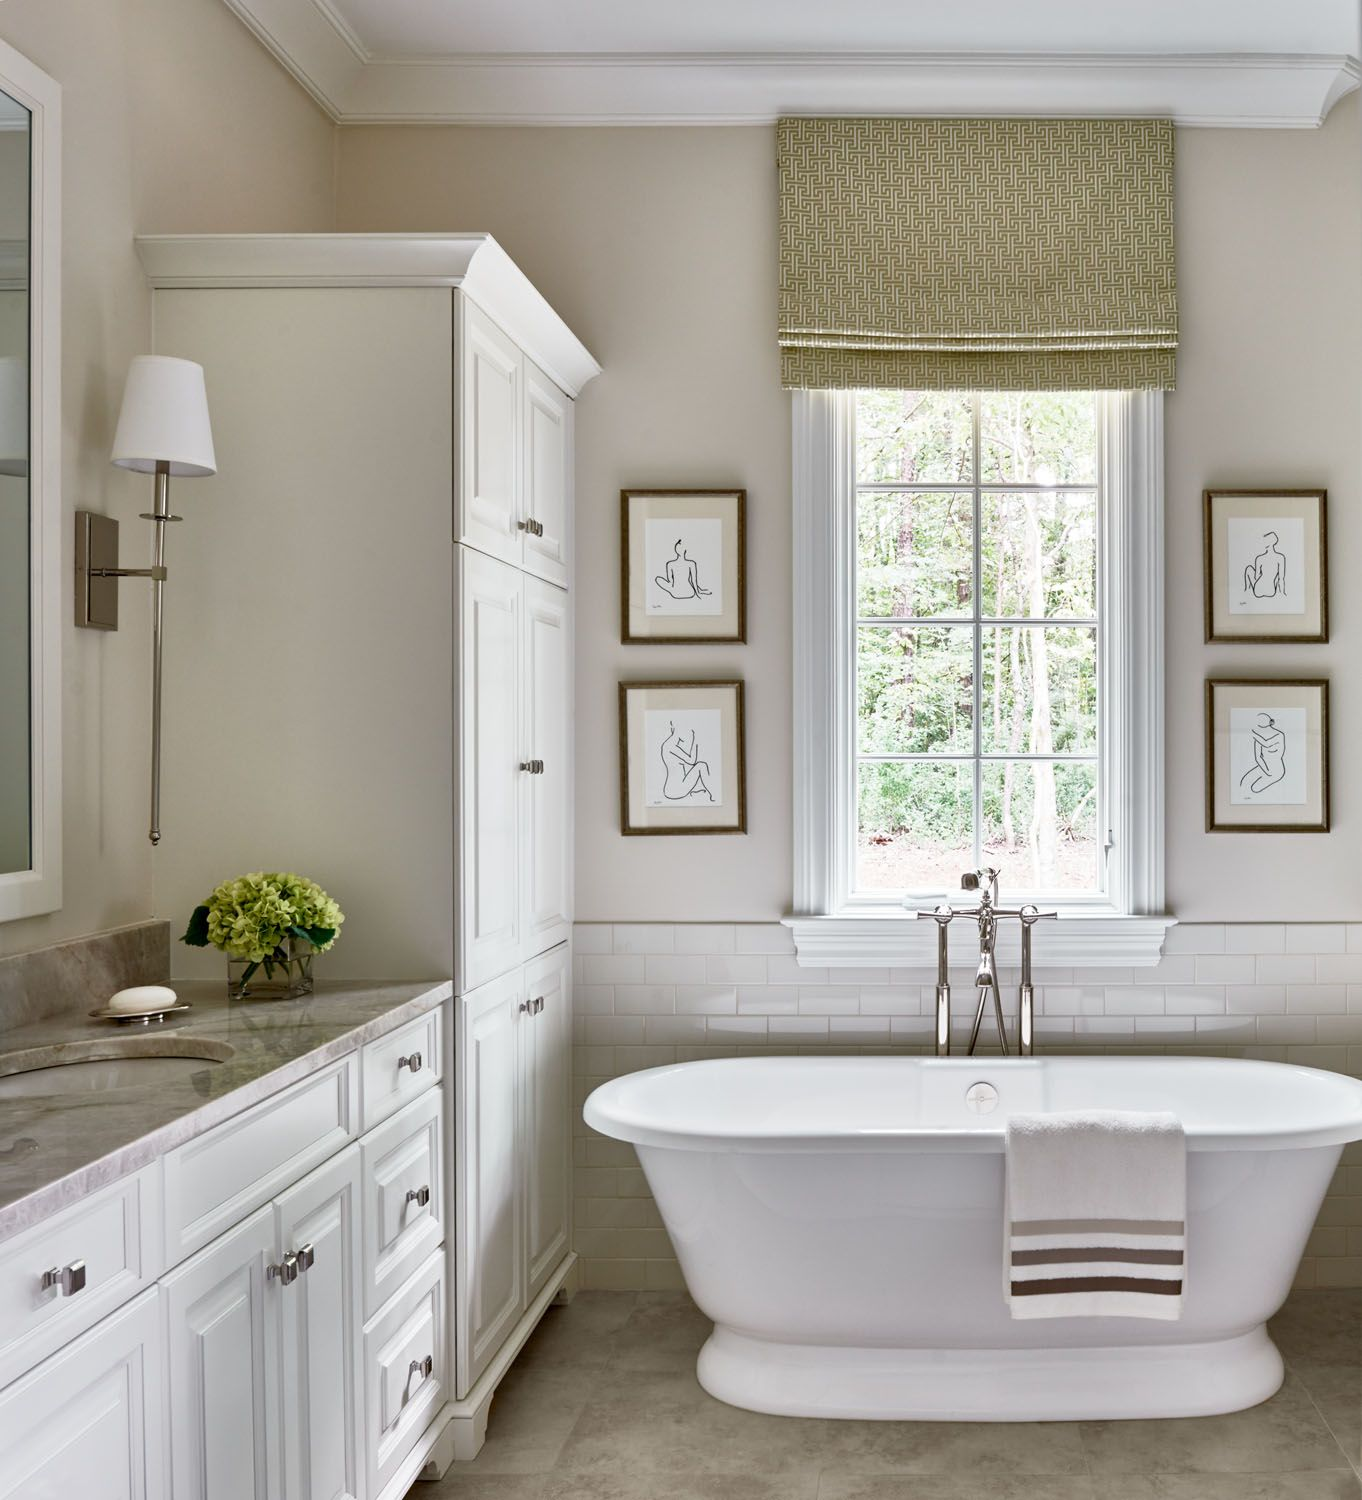 Bathroom inspiration Cheval Traci Zeller